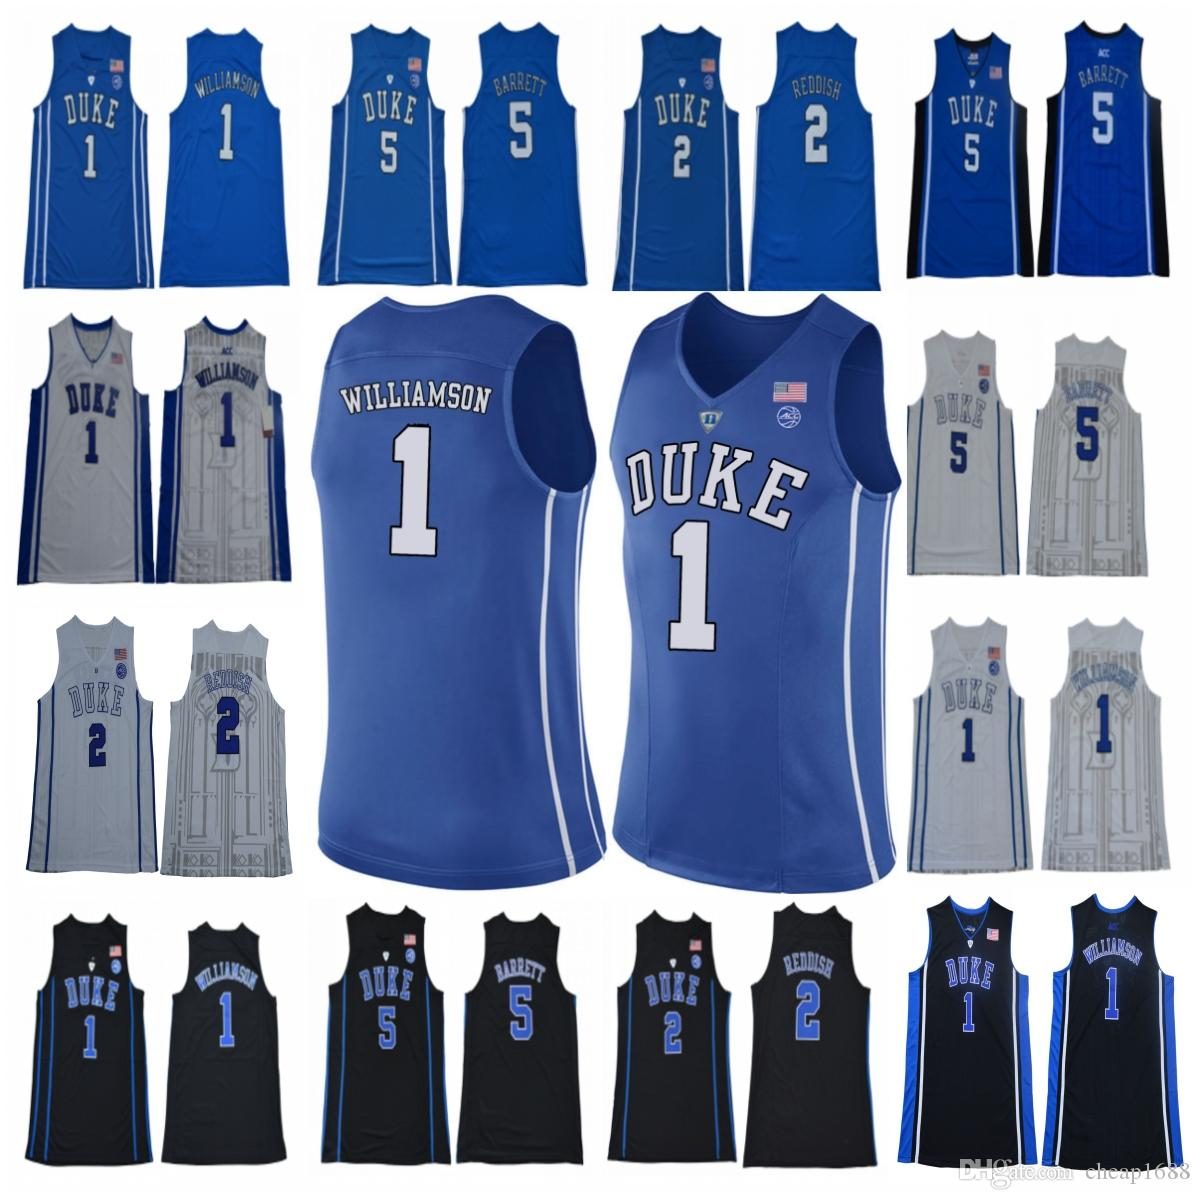 edfcb58f8071 2019 NCAA Duke Blue Devils 1 Zion Williamson 5 RJ Barrett 2 Cam Reddish  White Blue Black Men Youth College Basketball Jerseys From Cheap1688